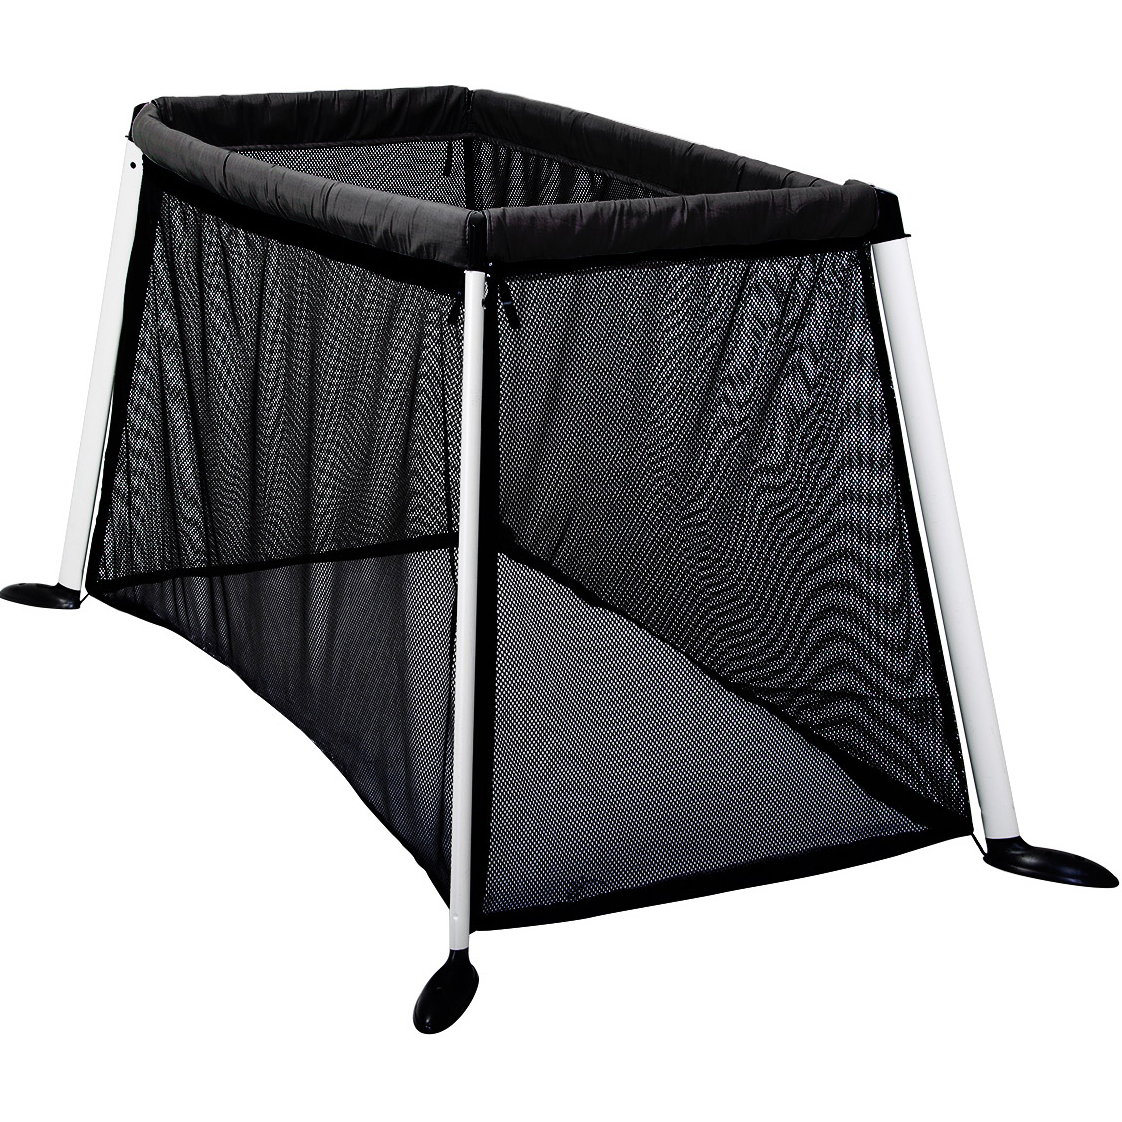 Phil & Teds Traveller Cot/Crib V3 - Black